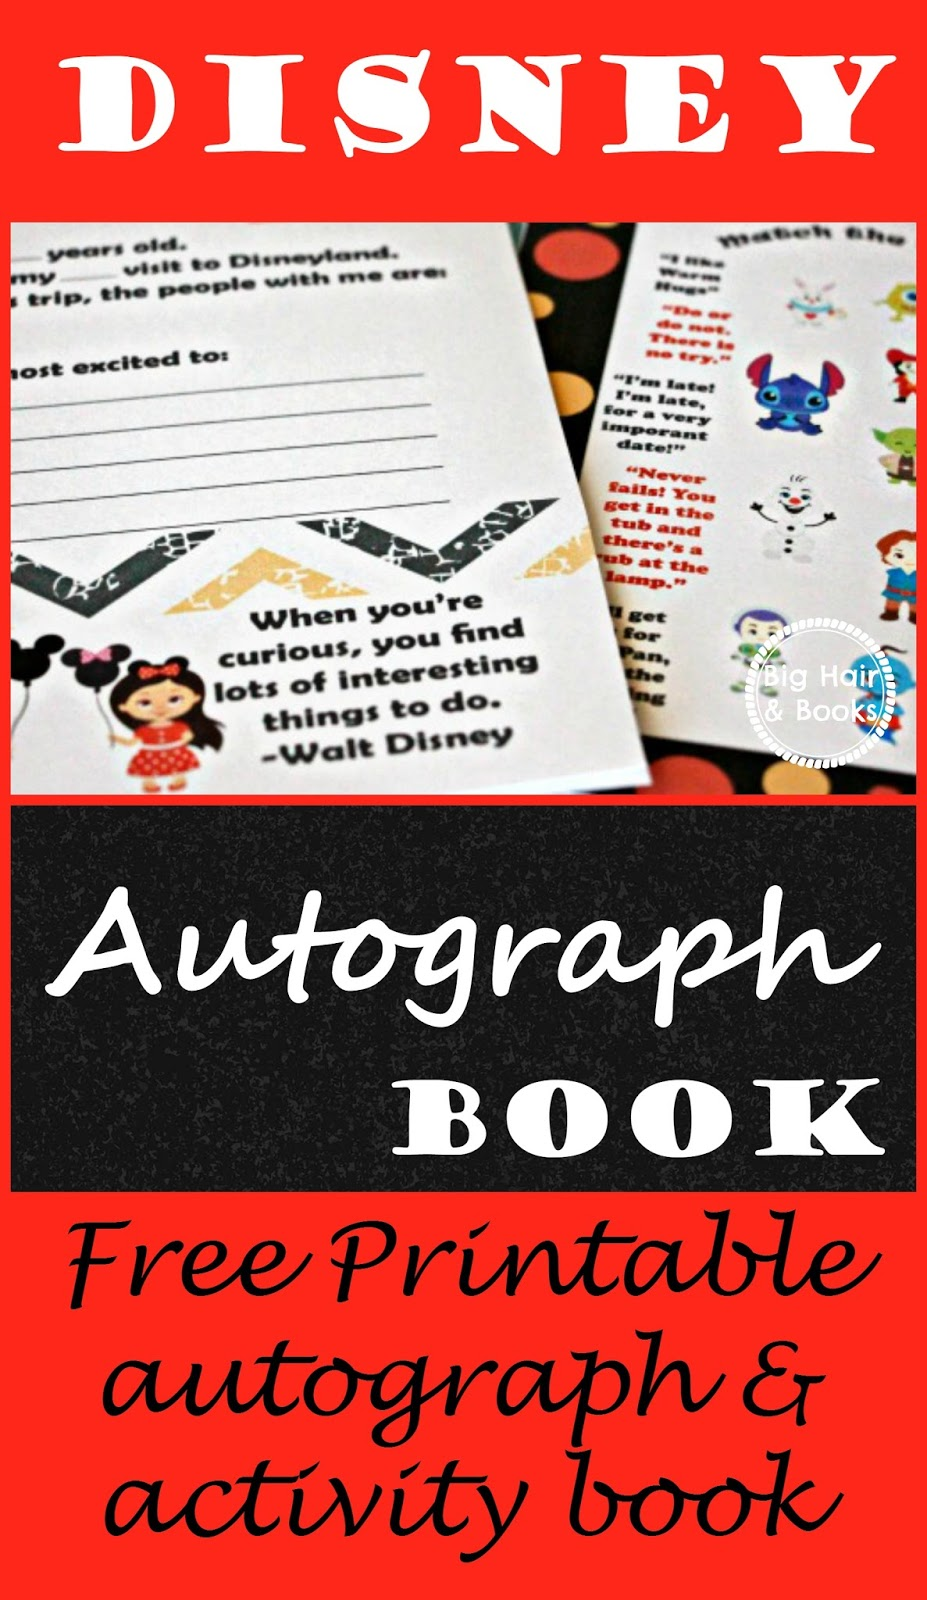 photo about Printable Disney Autograph Book referred to as Substantial Hair and Guides: Disney Autograph Video game E-book Absolutely free